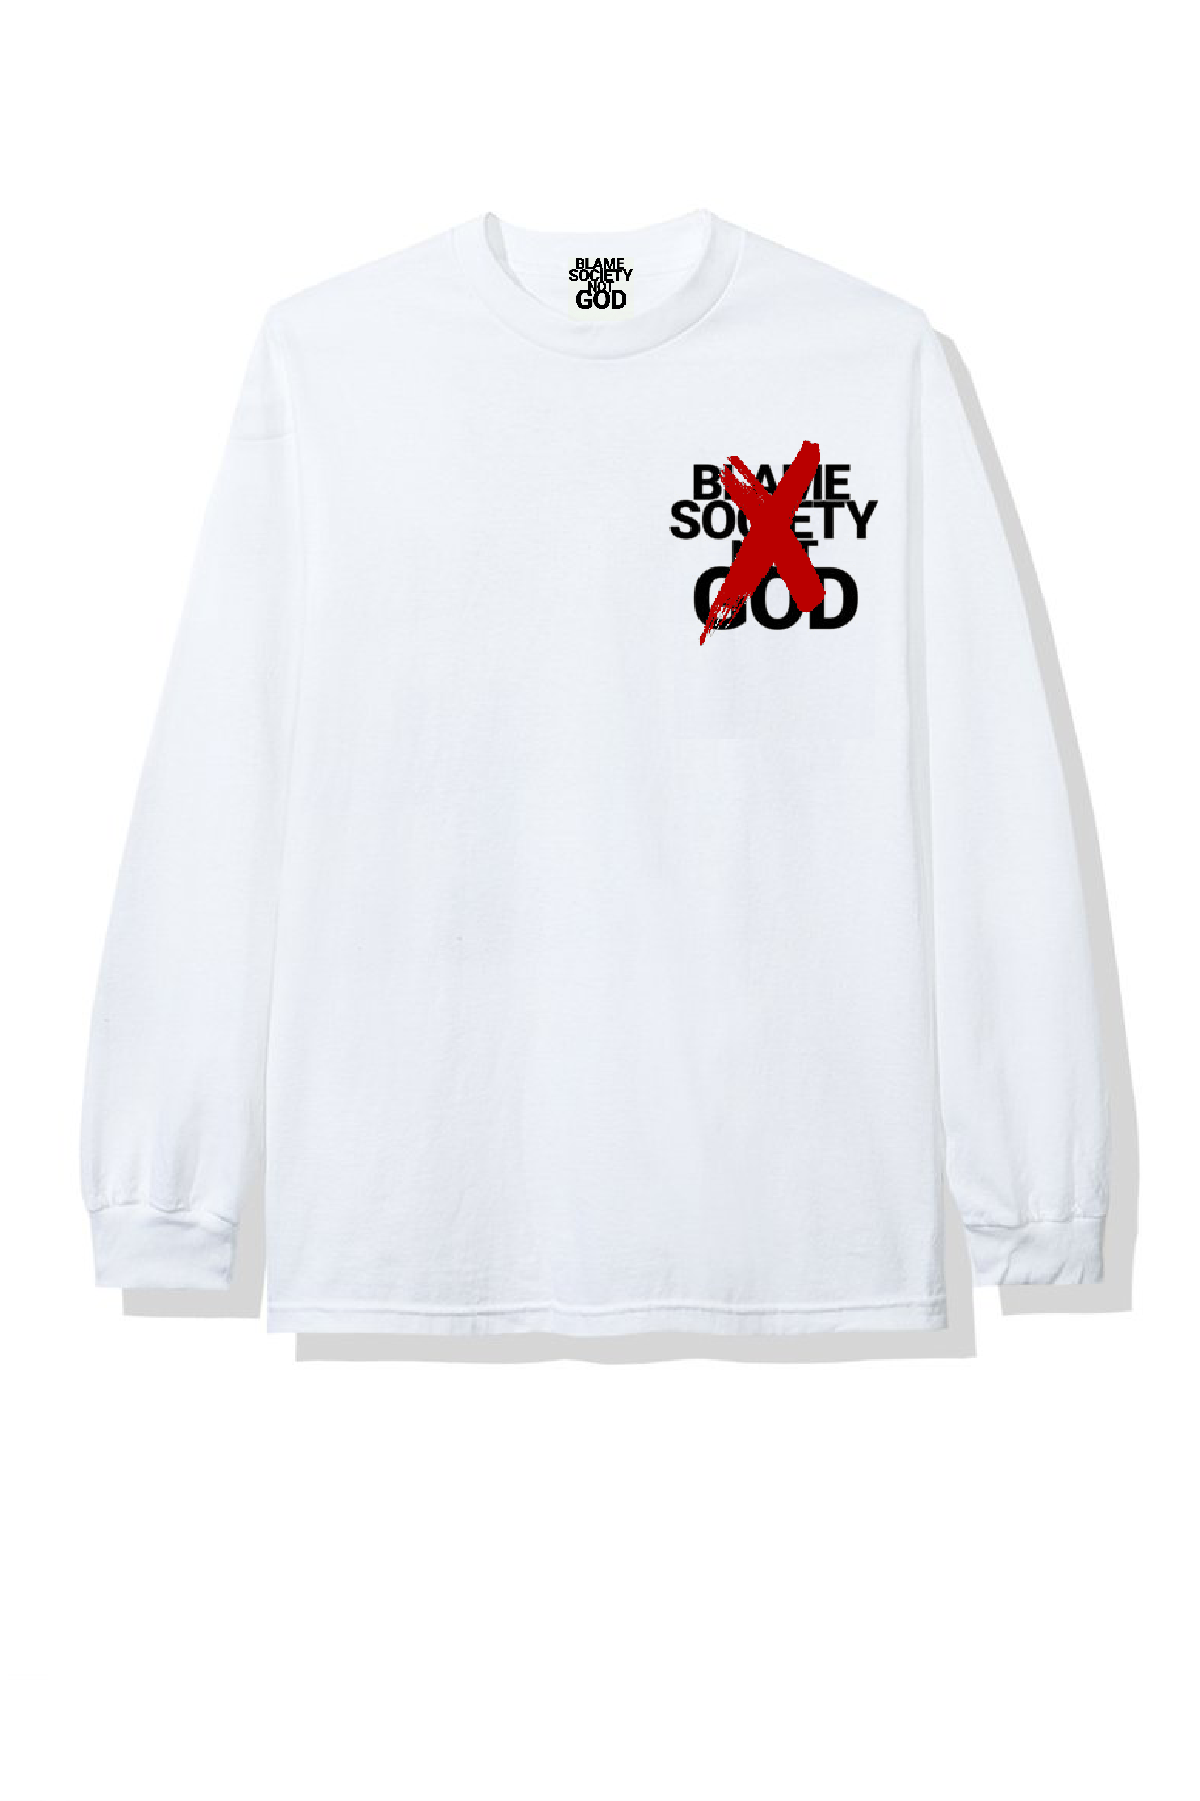 Image of BSNG  LOGO X 2 WHITE T-SHIRT